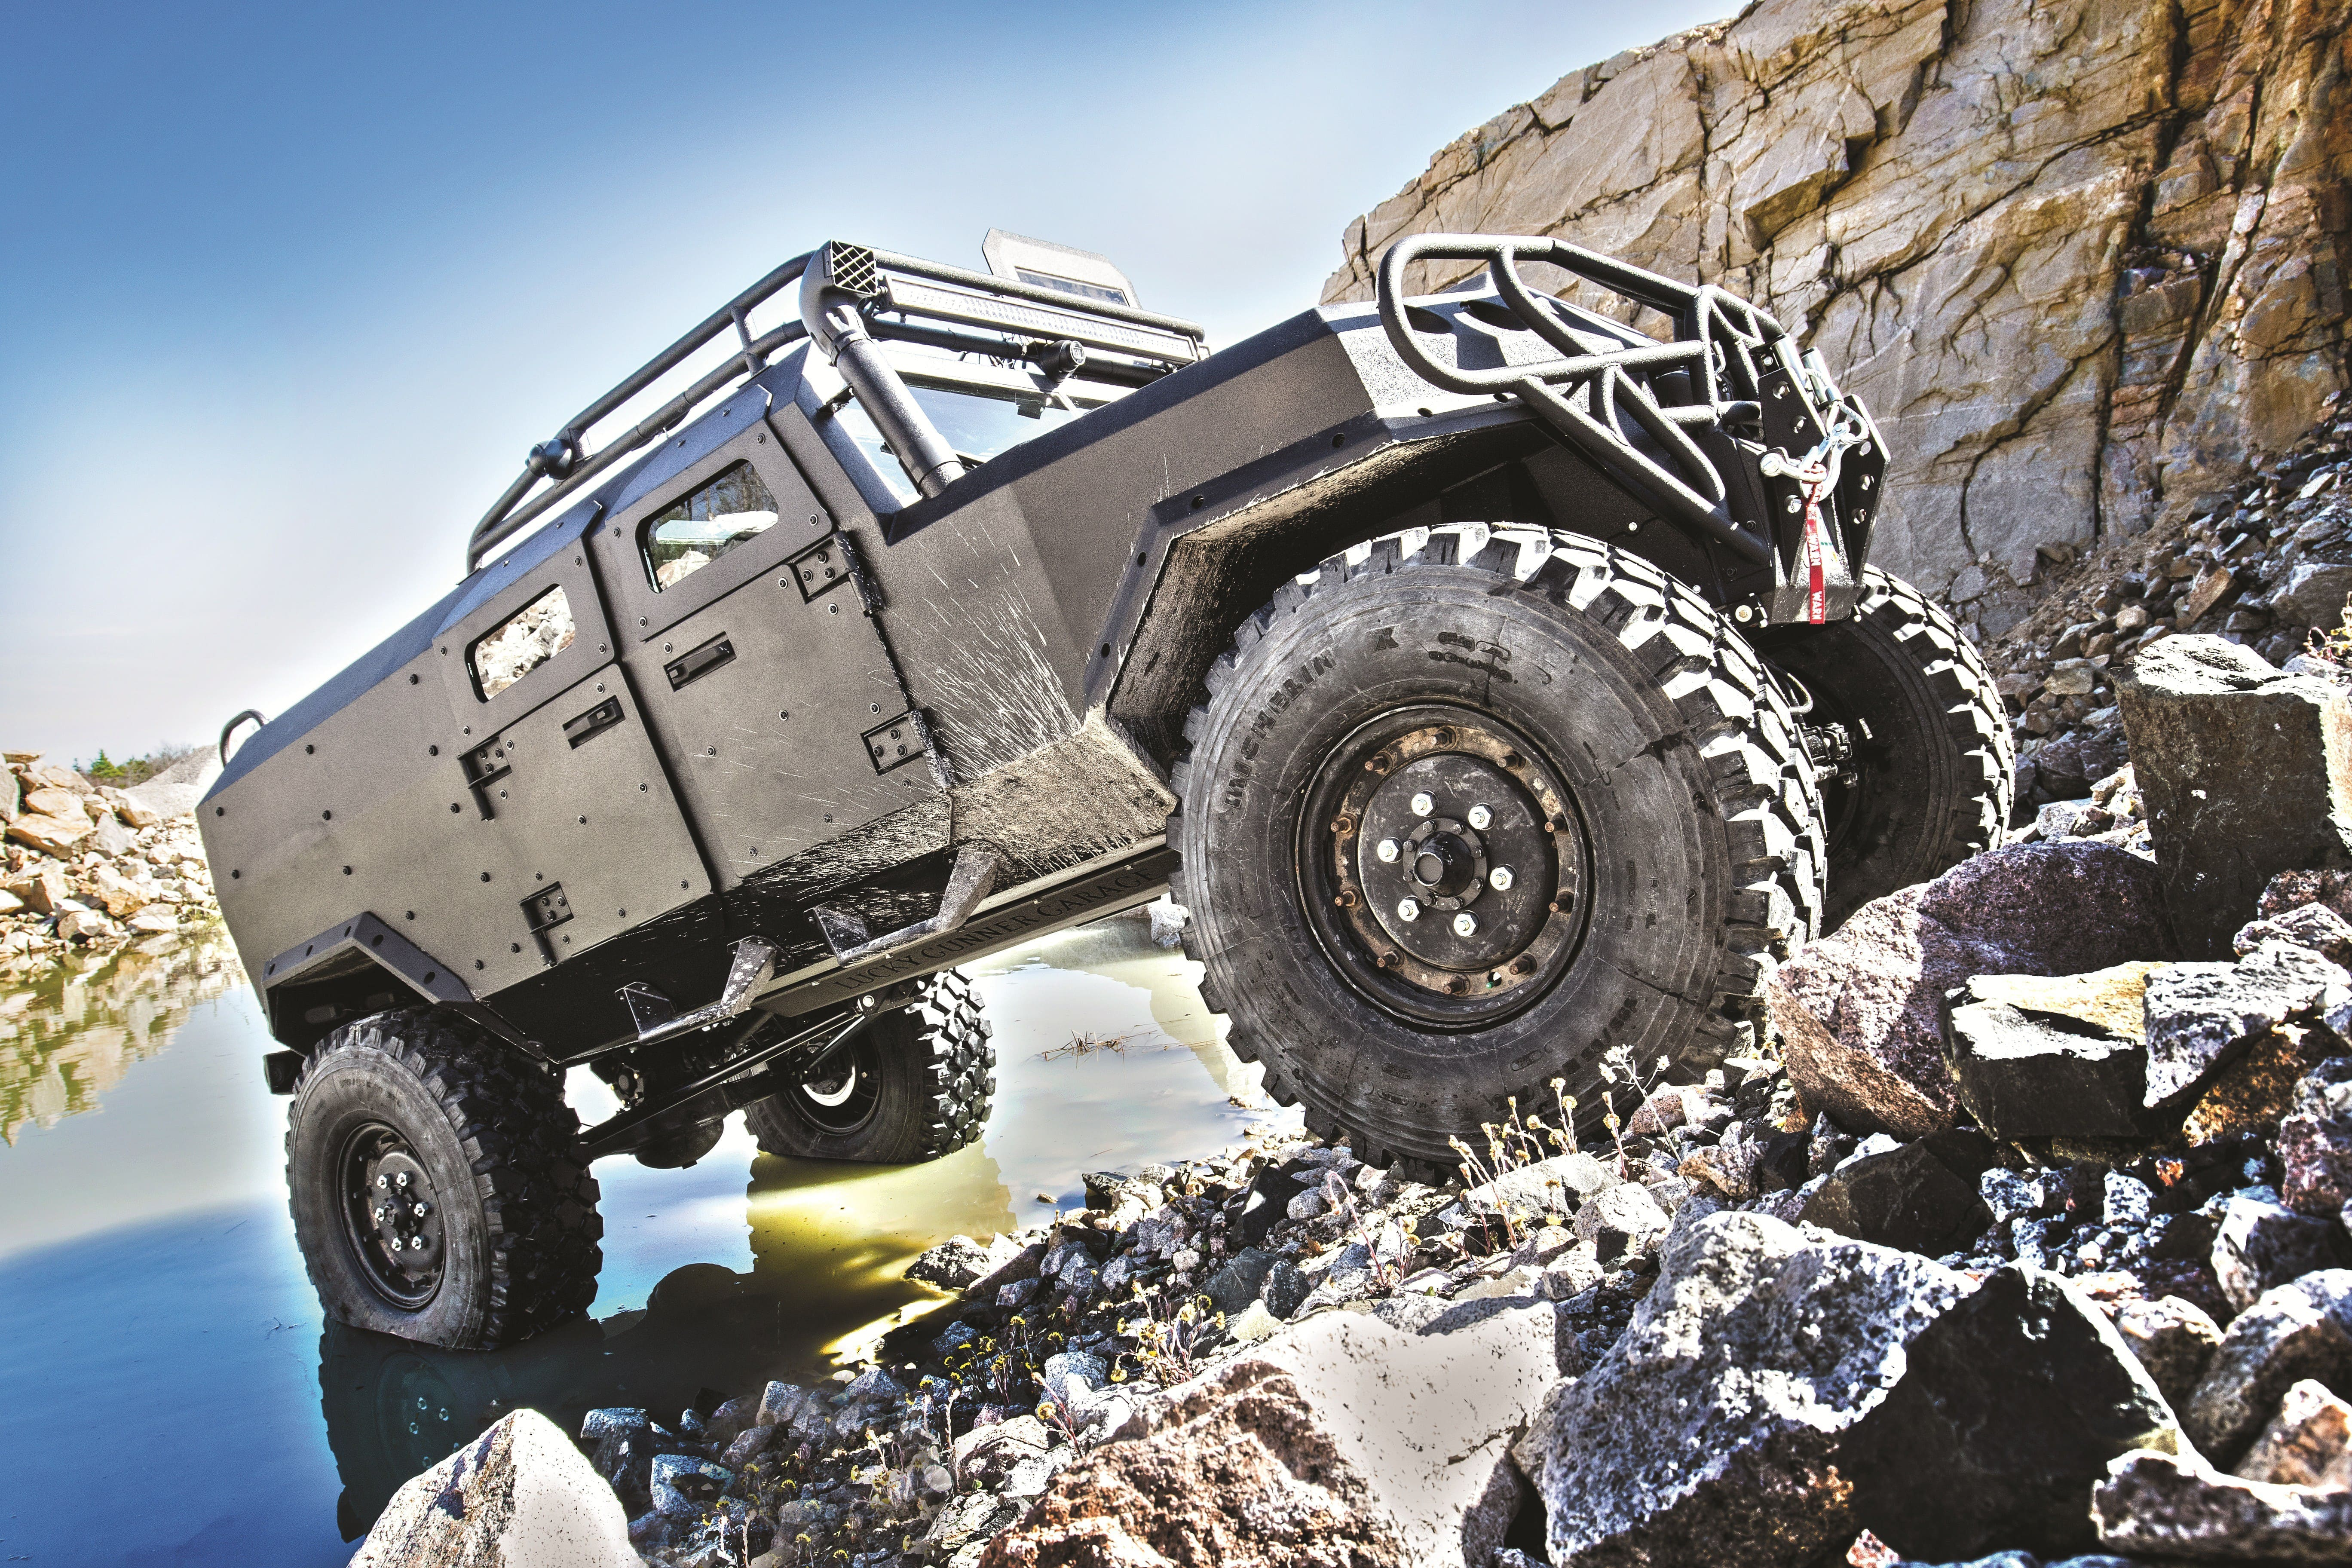 The Personal Survival Vehicle from Lucky Gunner Garage is purpose-designed to take you and your family halfway across the country in comfort and safety without resupply.